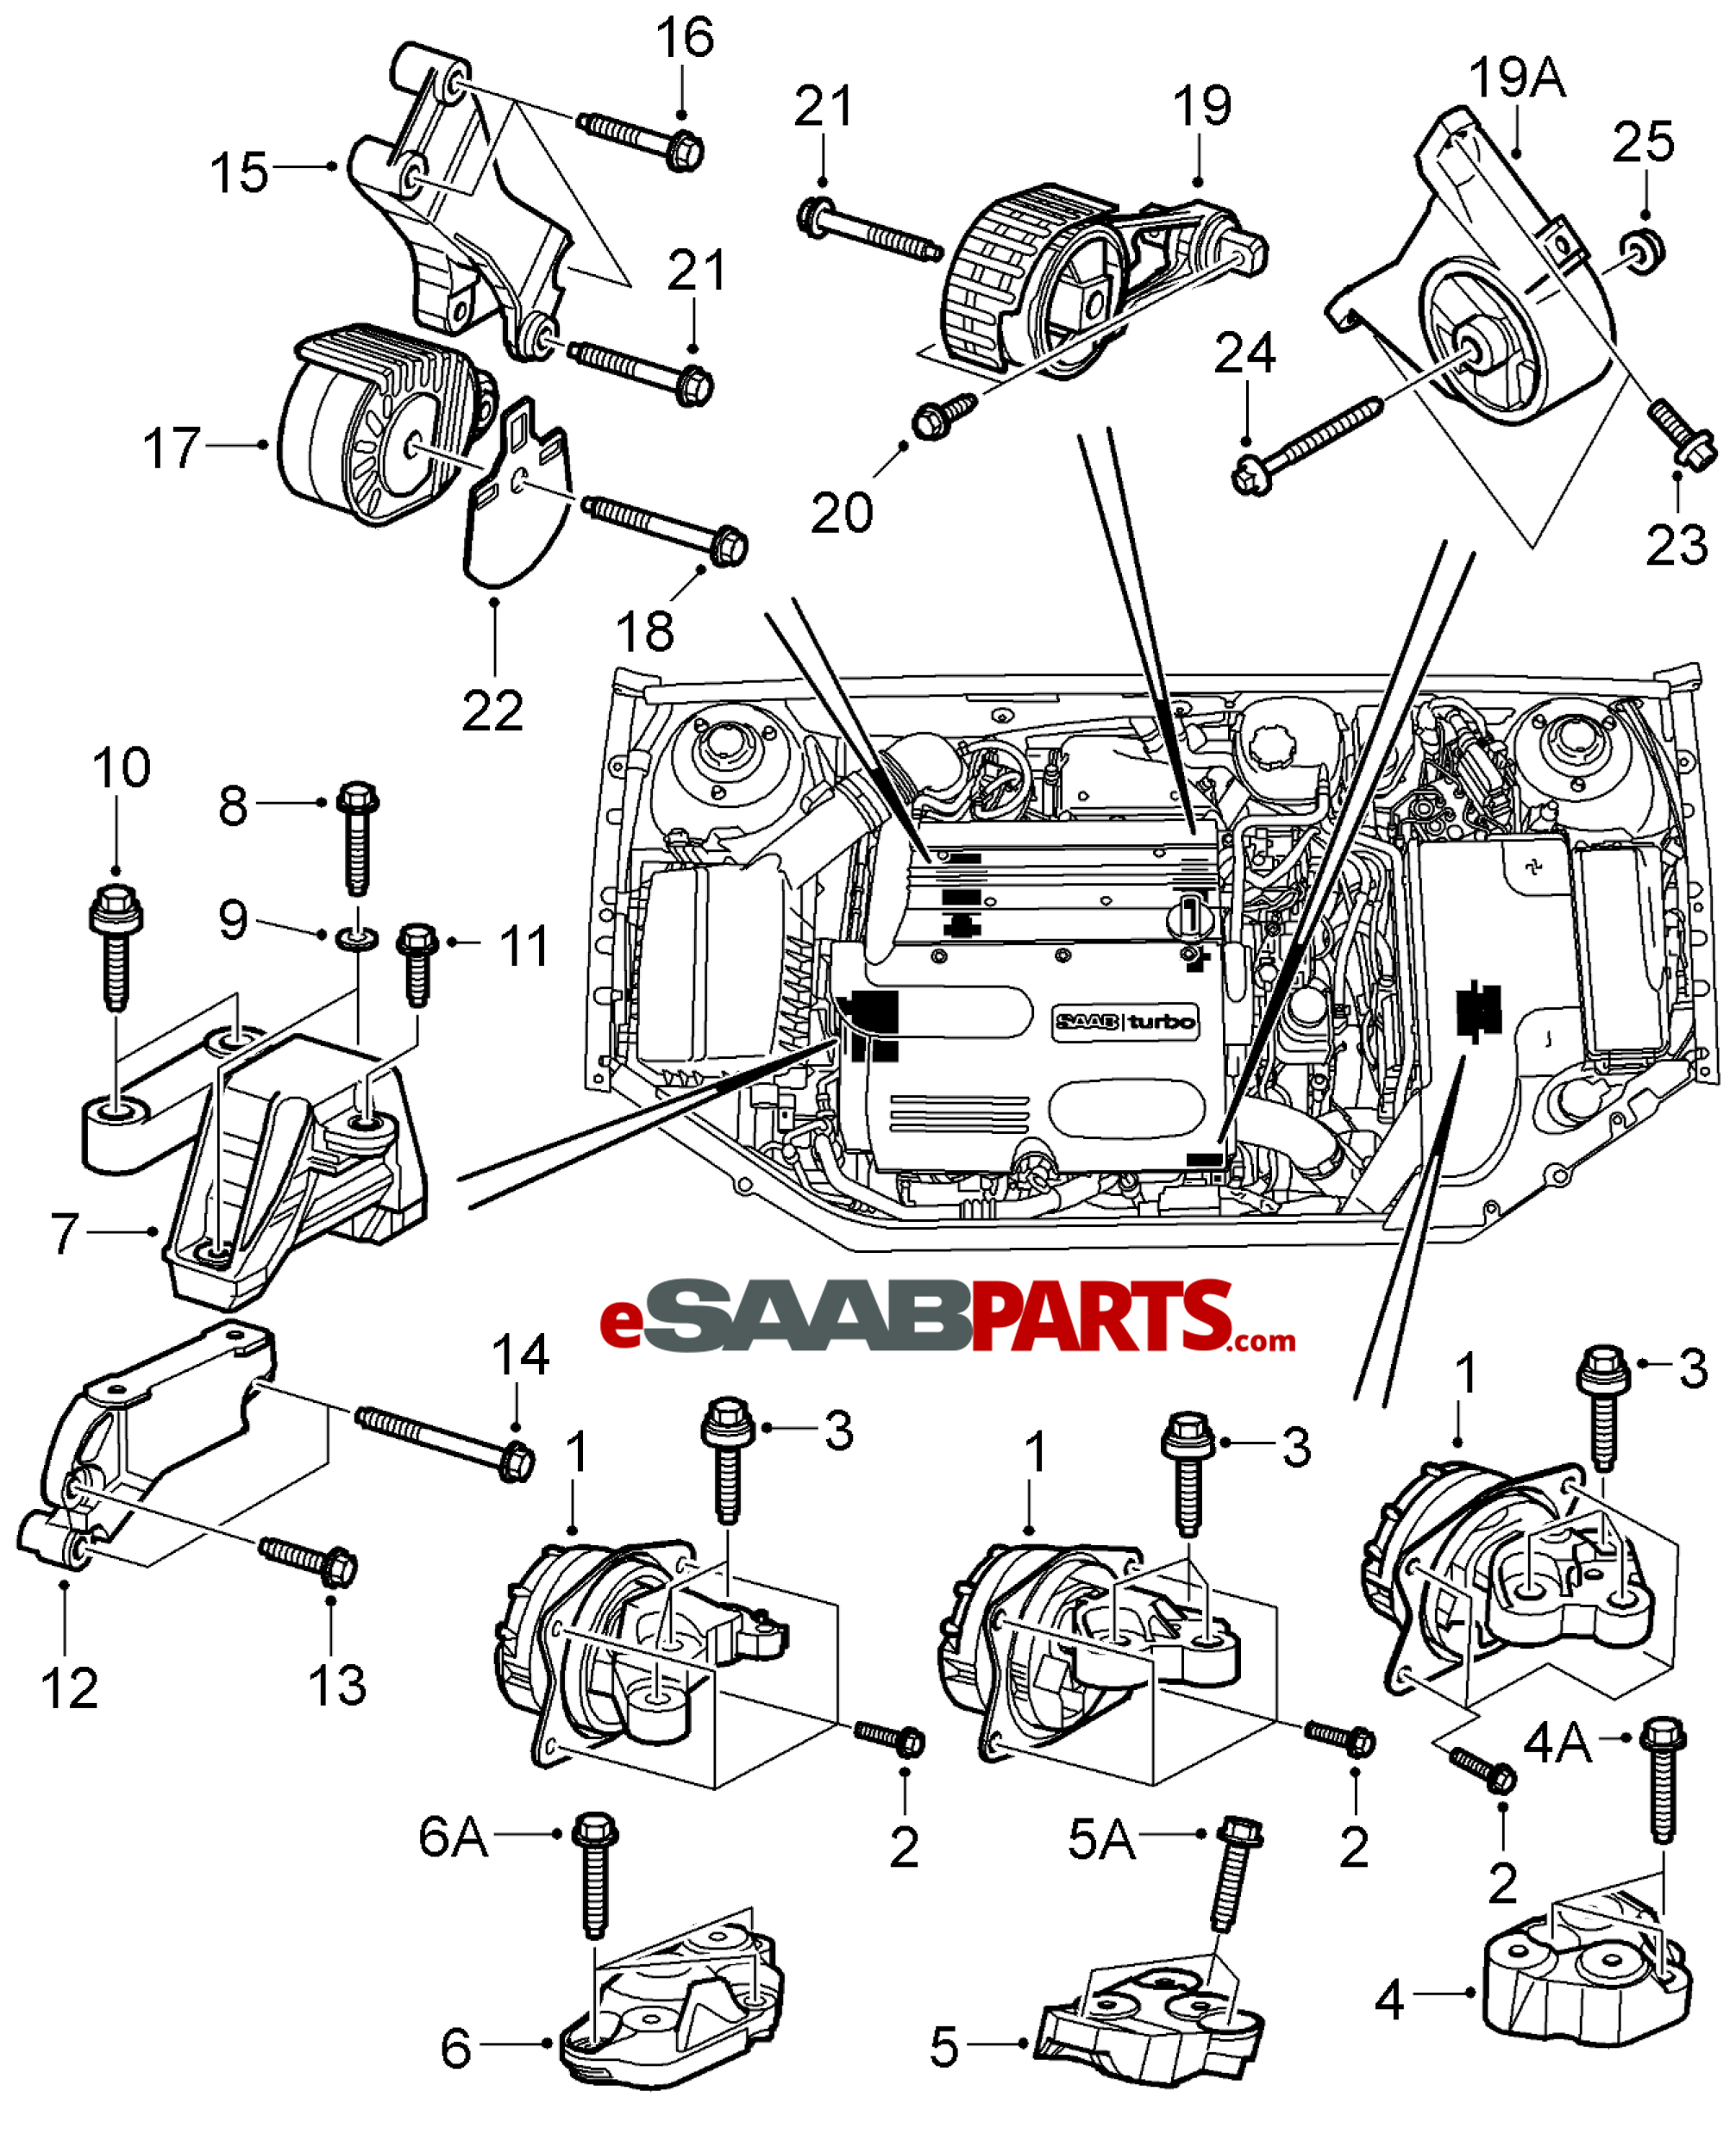 82582 esaabparts com saab 9 3 (9440) \u003e engine parts \u003e engine mounts